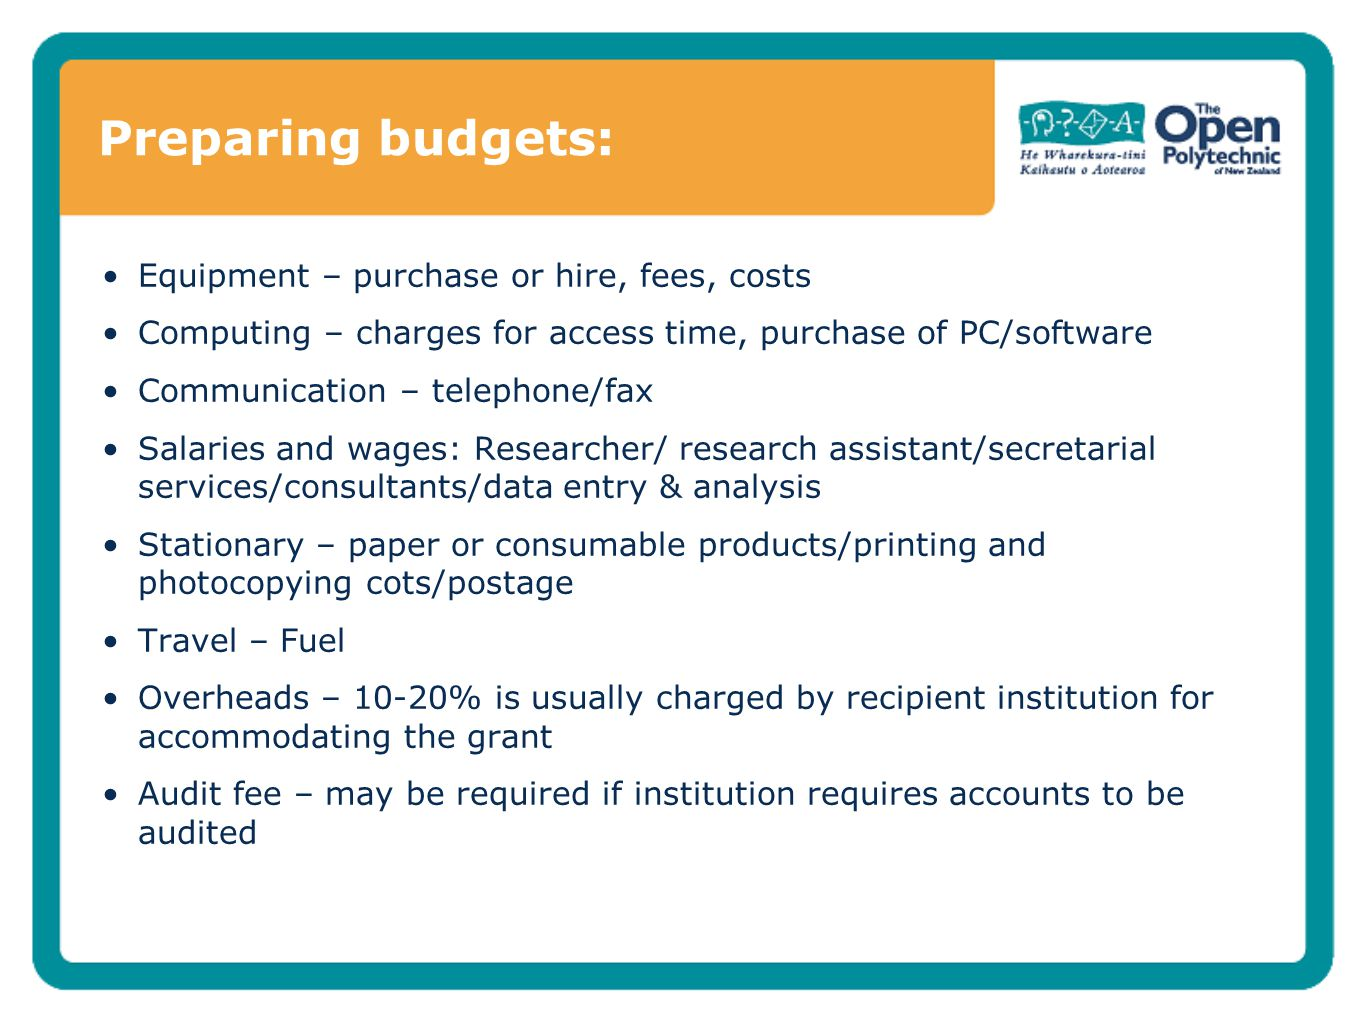 Preparing budgets: Equipment – purchase or hire, fees, costs Computing – charges for access time, purchase of PC/software Communication – telephone/fa